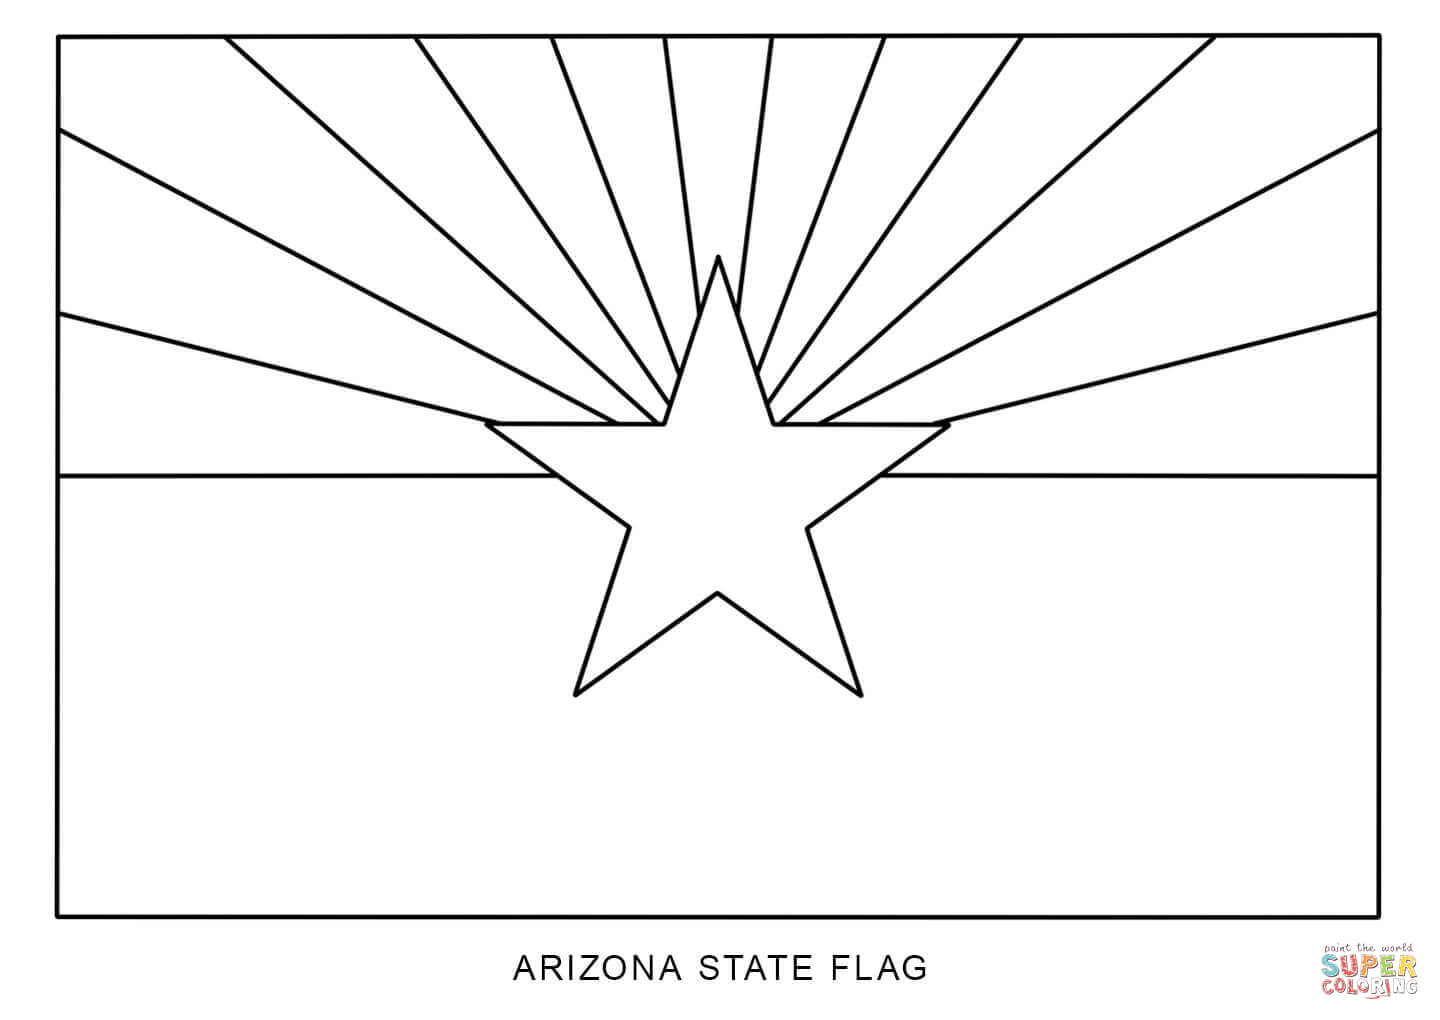 how to draw florida state flag flag of arizona coloring page free printable coloring pages flag to how florida draw state